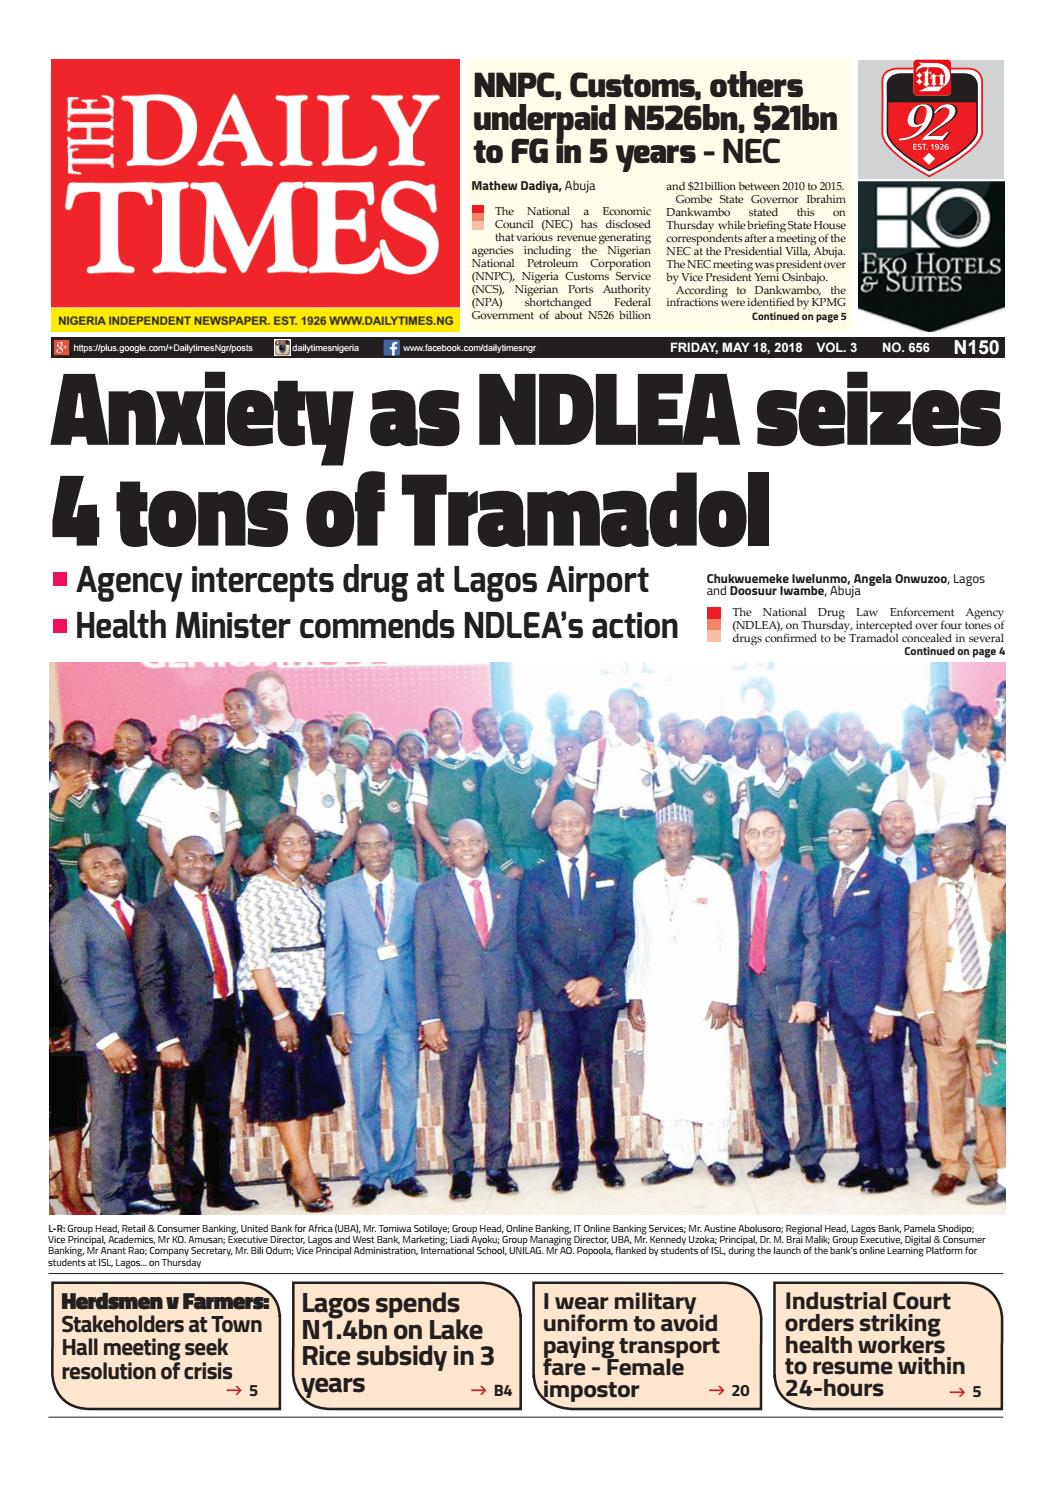 Dtn 18 5 18 by Dailytimes - issuu